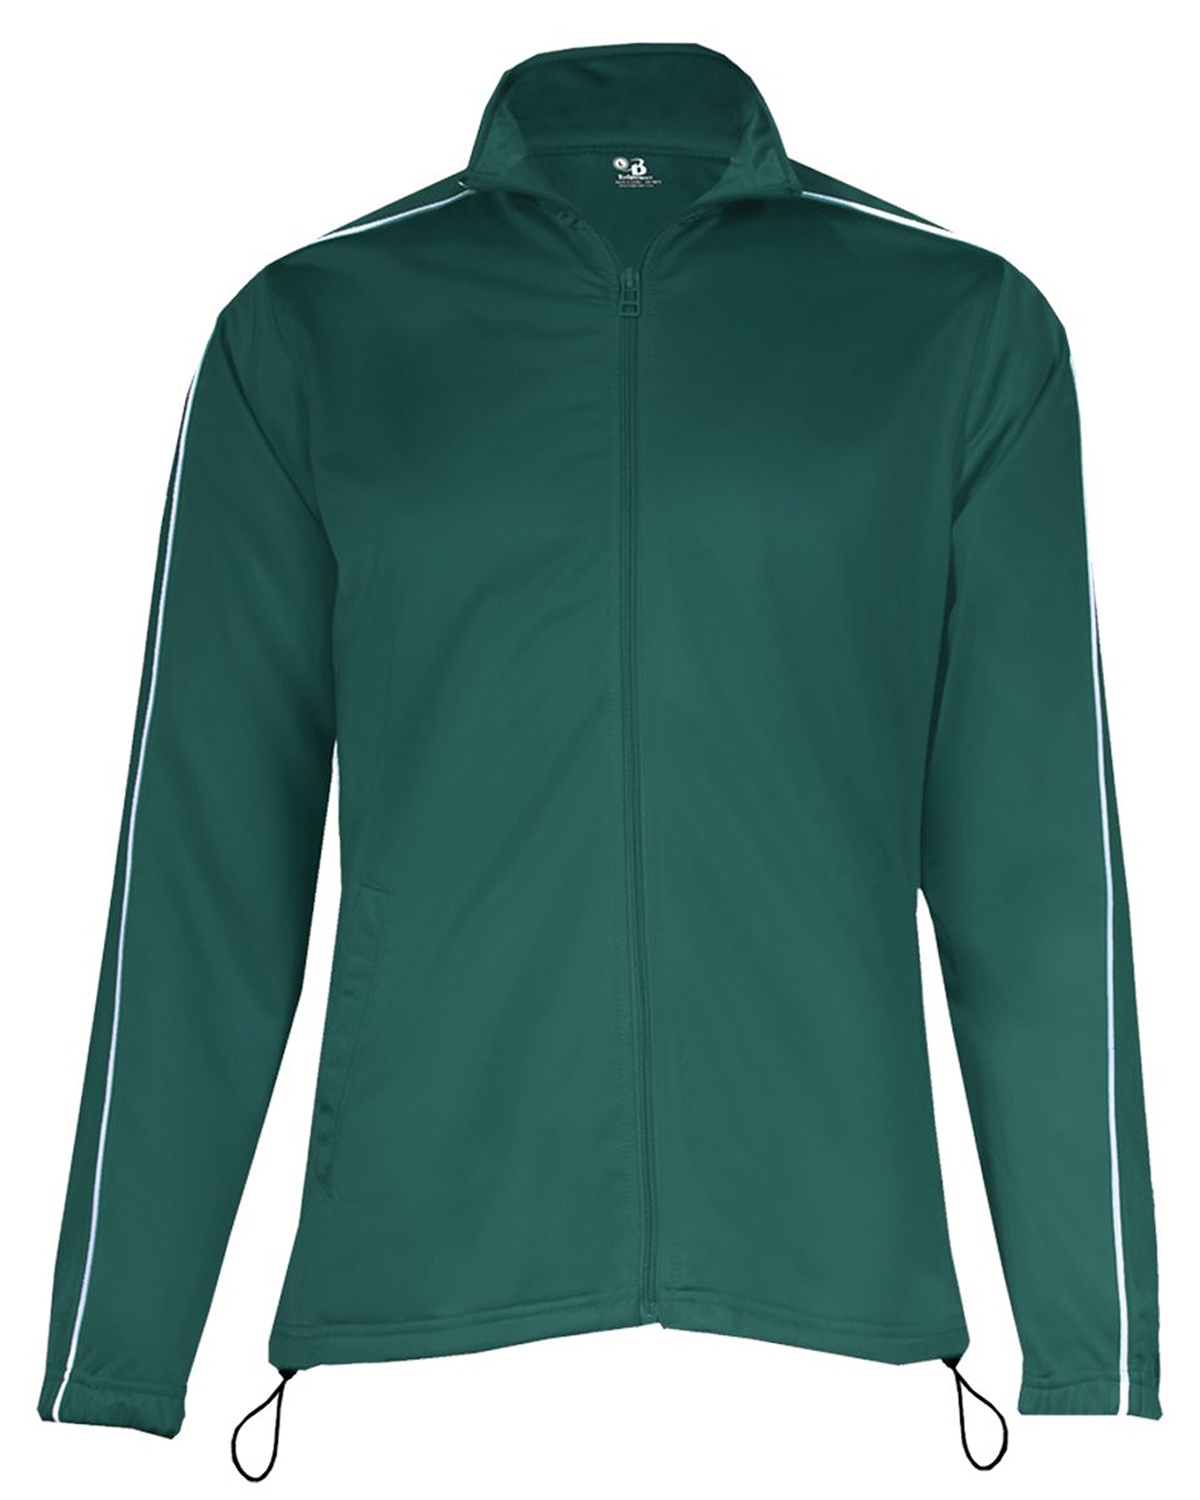 Badger Sport 7901 - Ladies' Brushed Tricot Razor Jacket